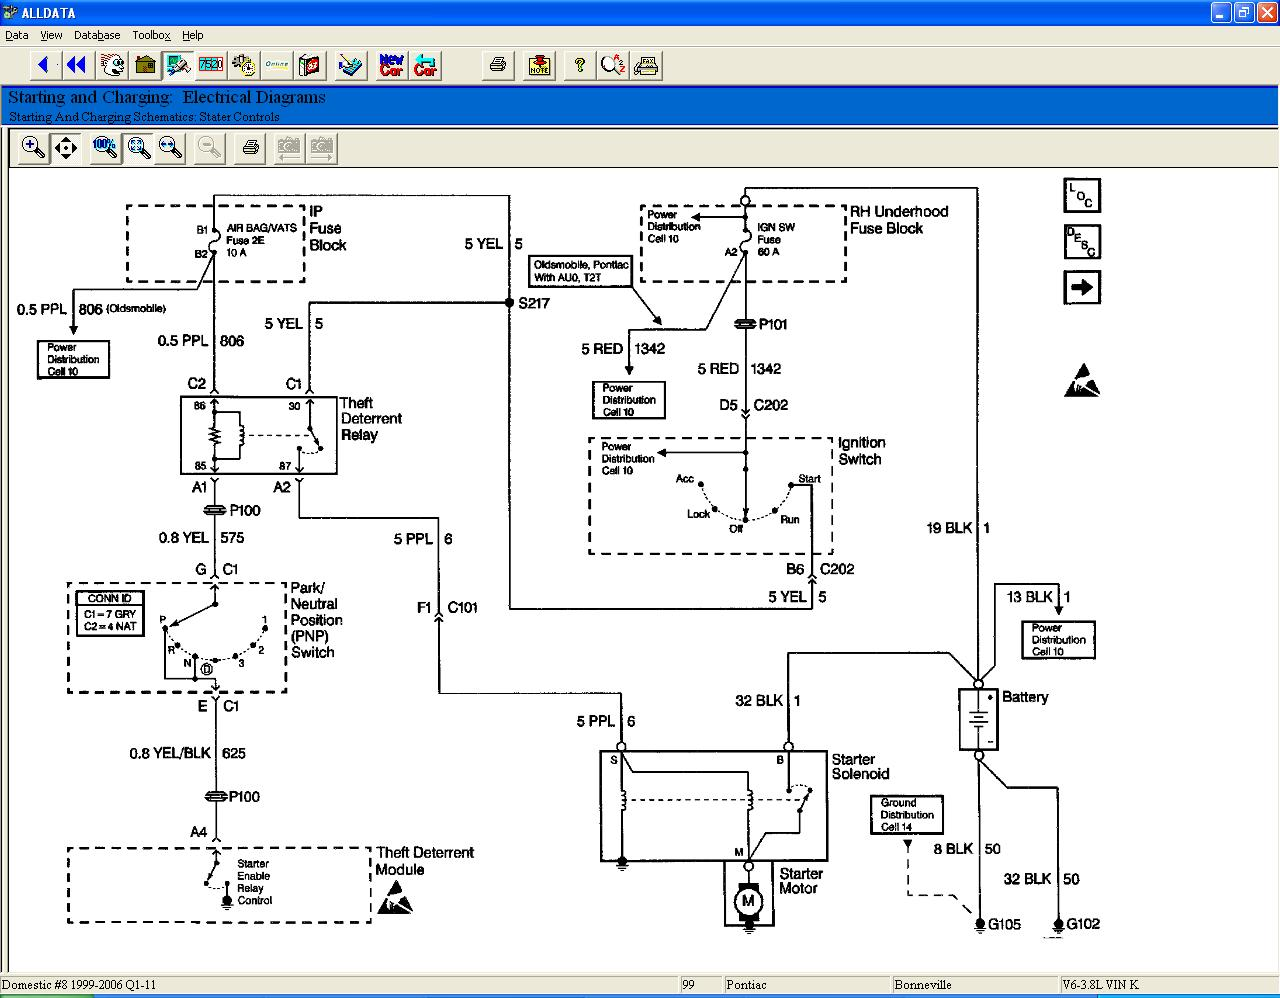 Vats Wiring Diagram Electrical 92 Cadillac Deville Chevy Camaro Seville Gm Bypass Module